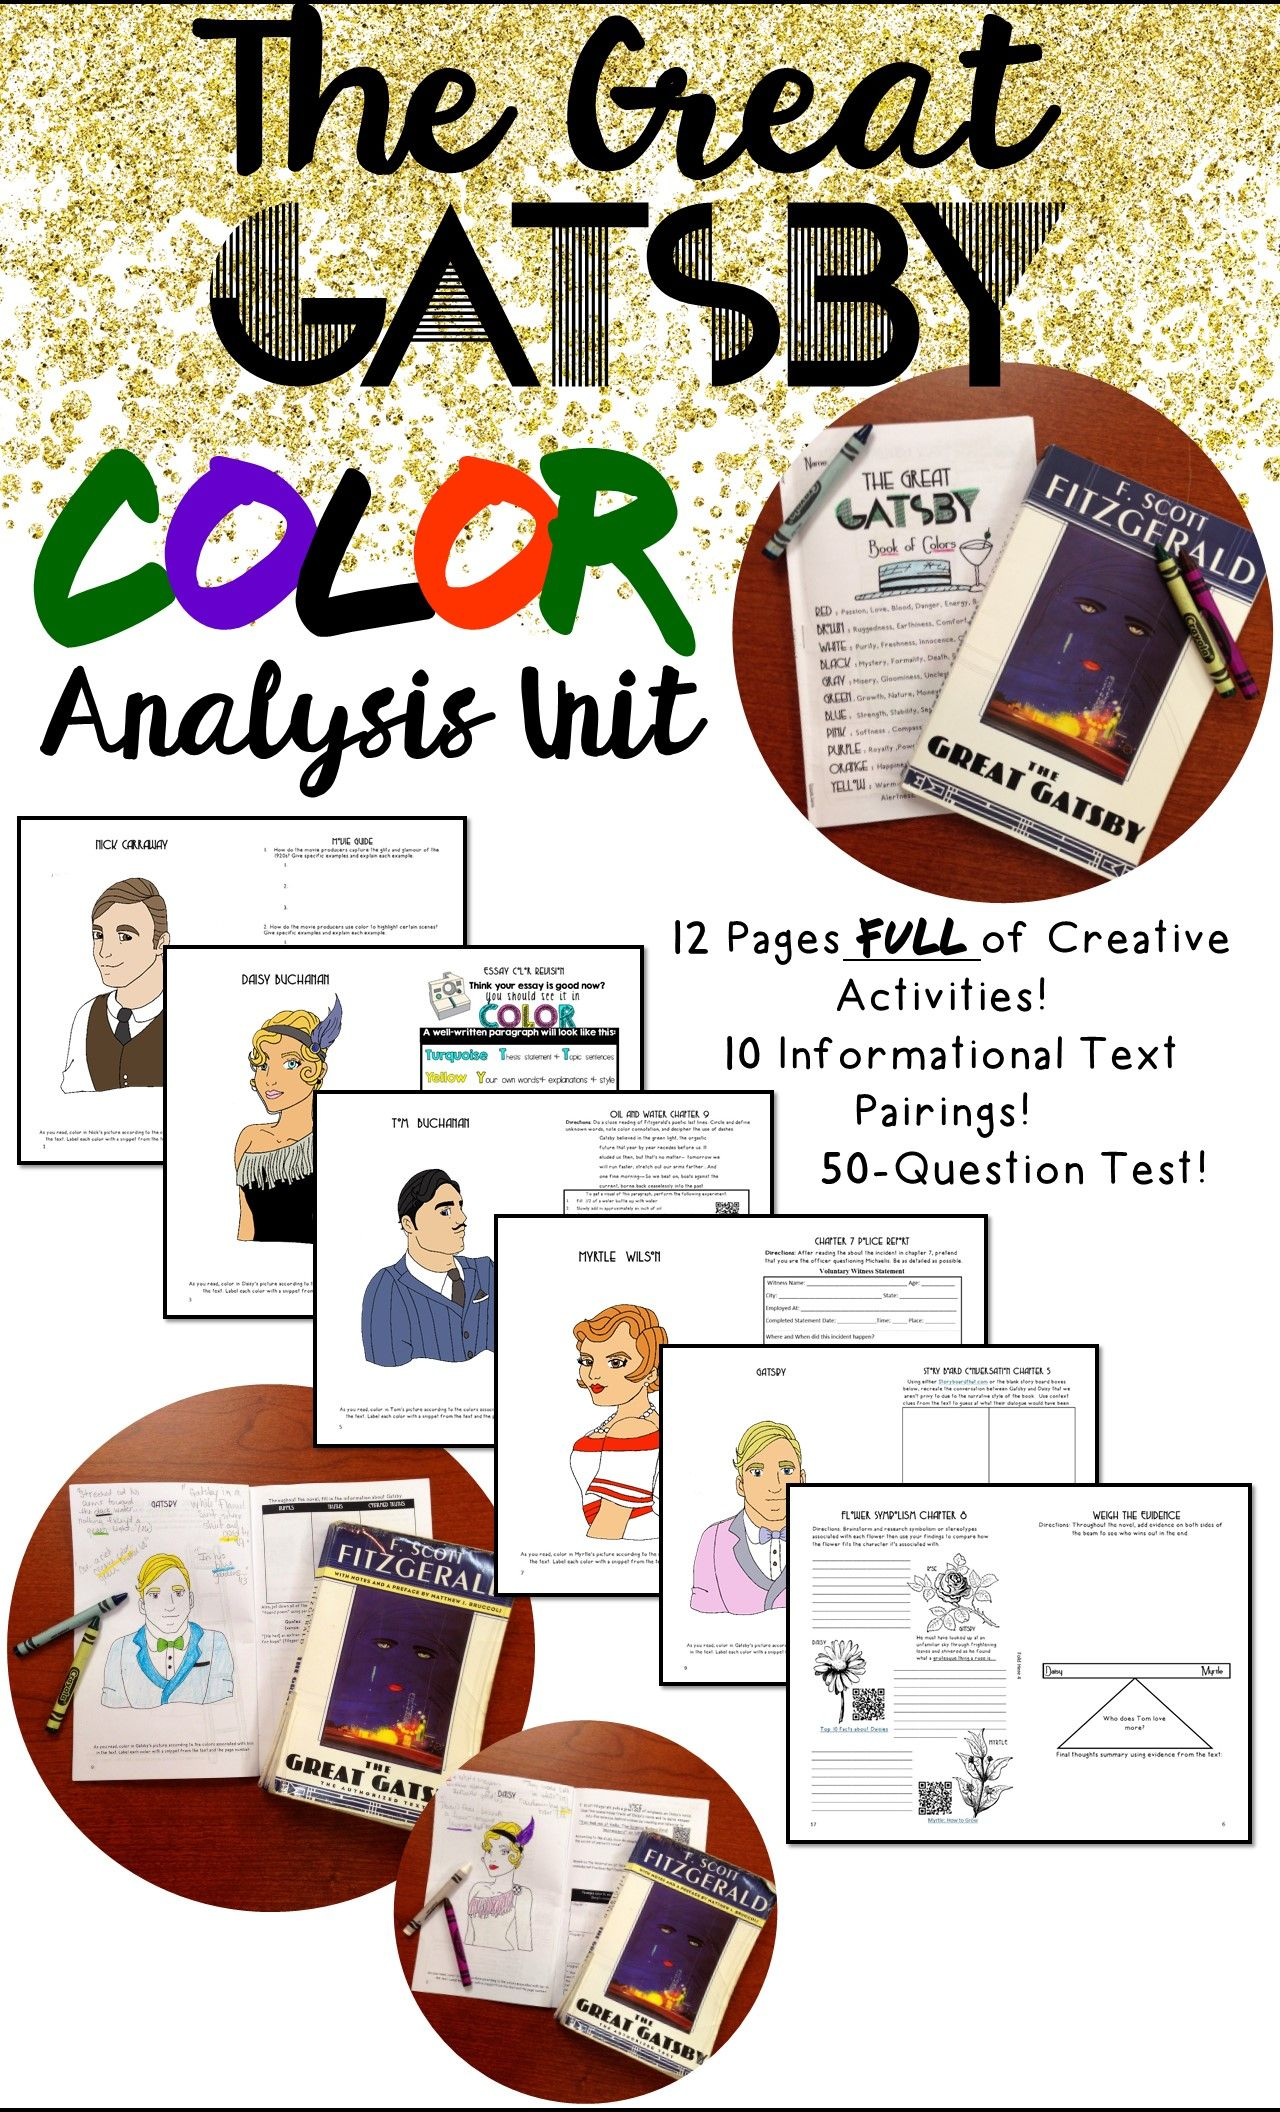 The great gatsby color analysis unit plan informational text the great gatsby color analysis unit uses color connotations and symbolism to get deep meanings buycottarizona Choice Image